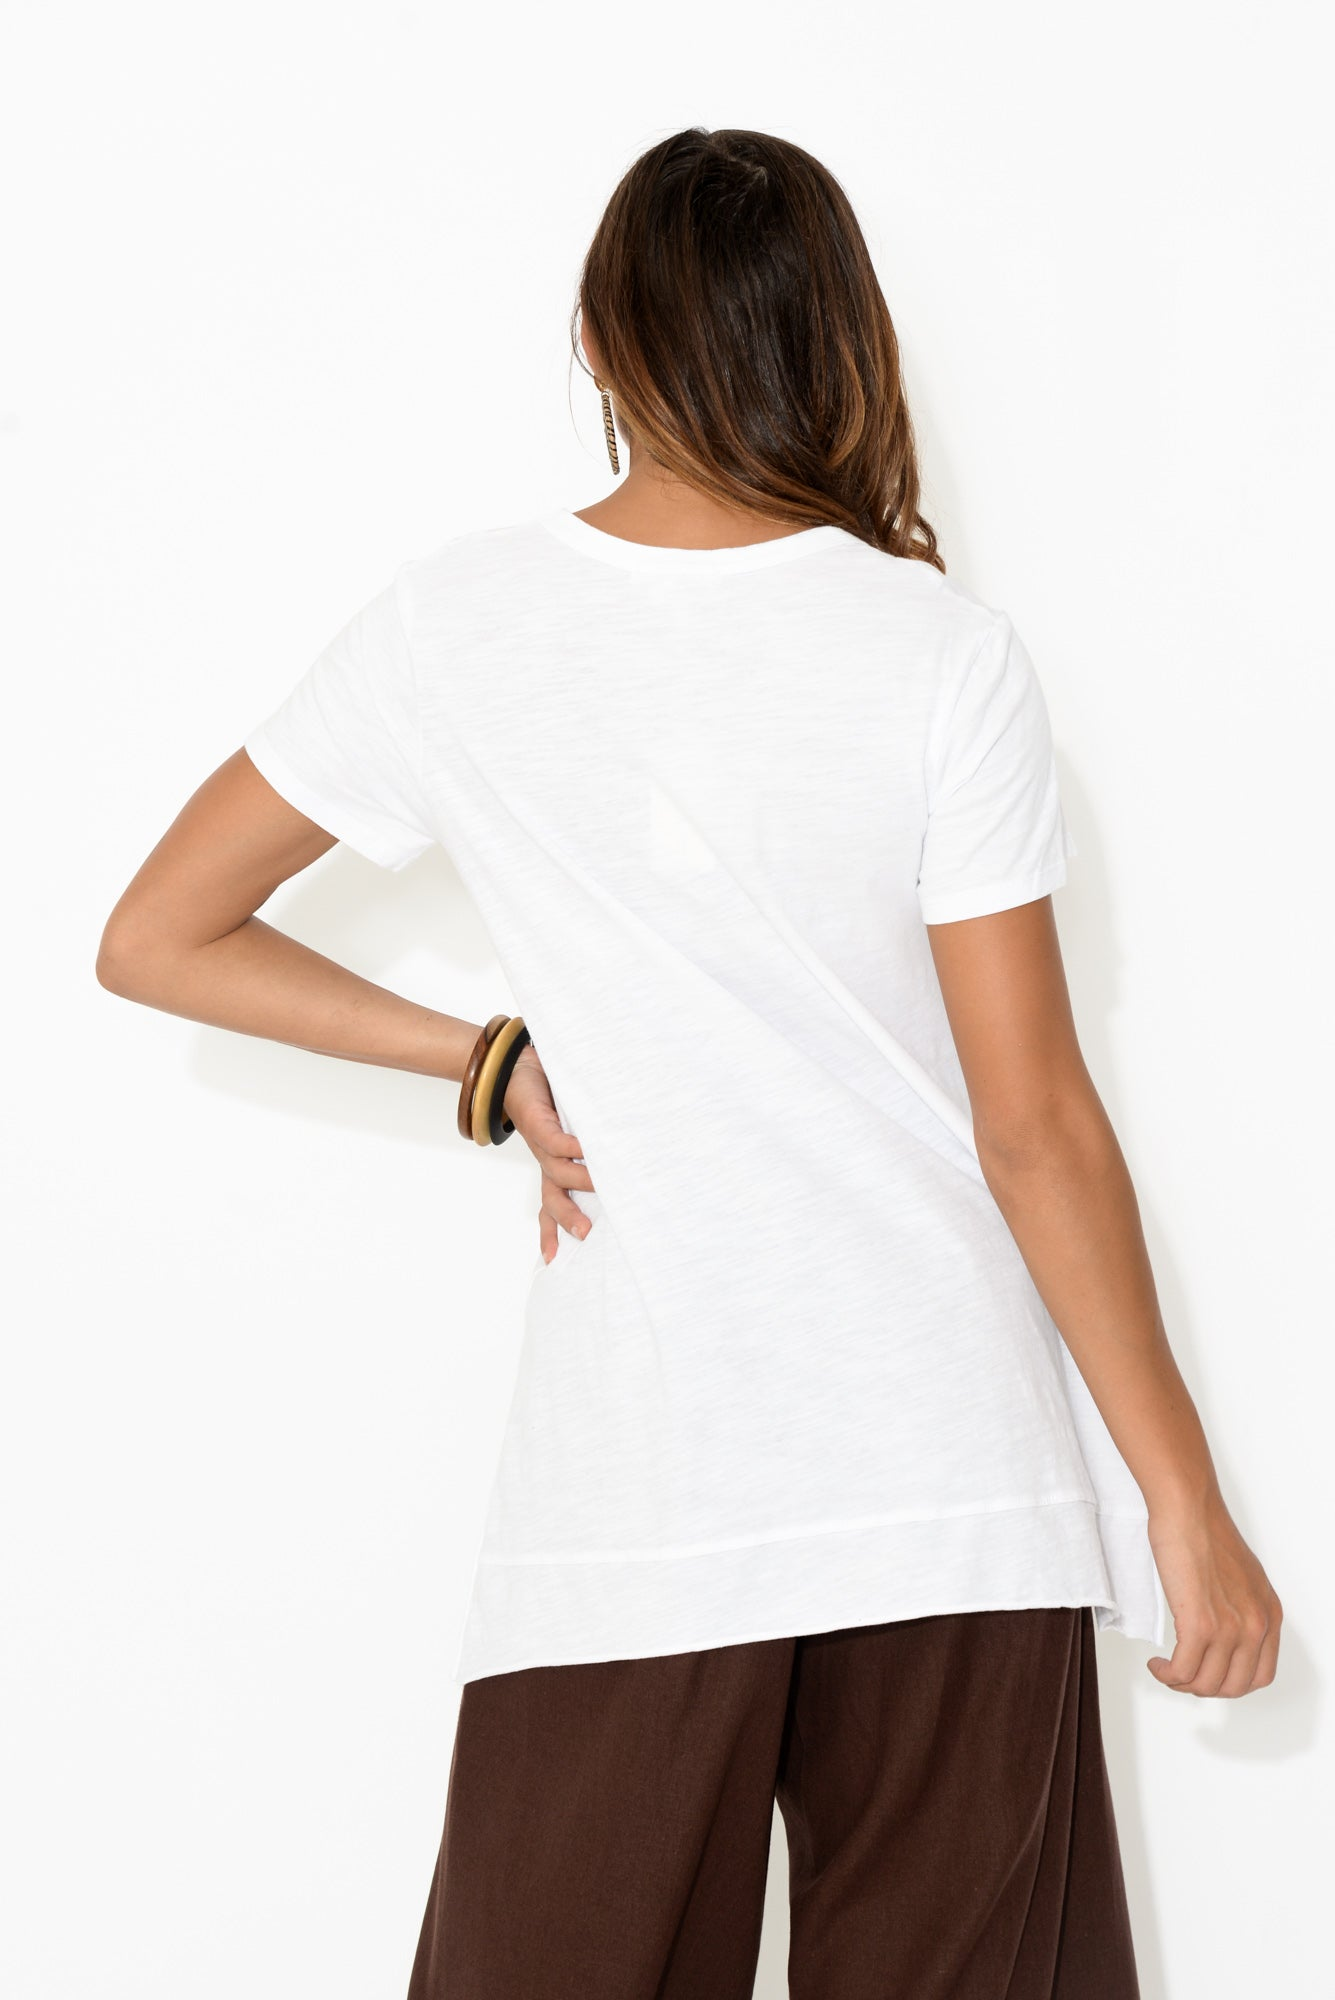 Brighton White Cotton Tee